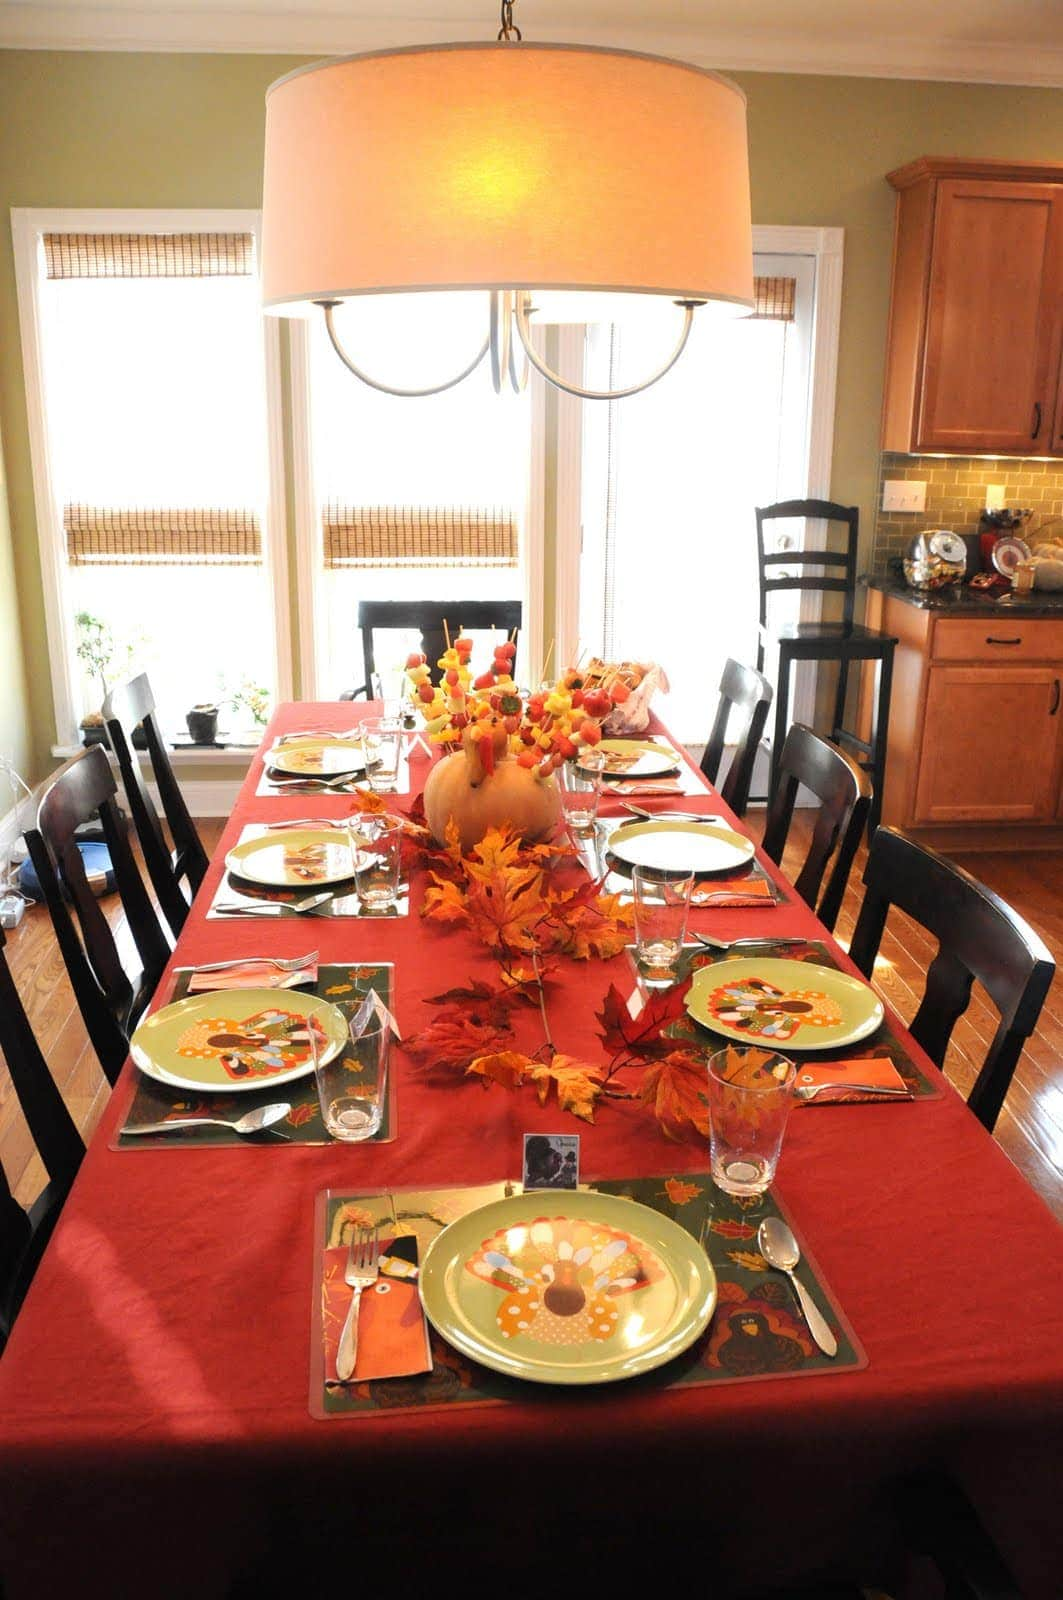 Thanksgiving Decor The Polkadot Chair: fall decorating ideas for dinner party